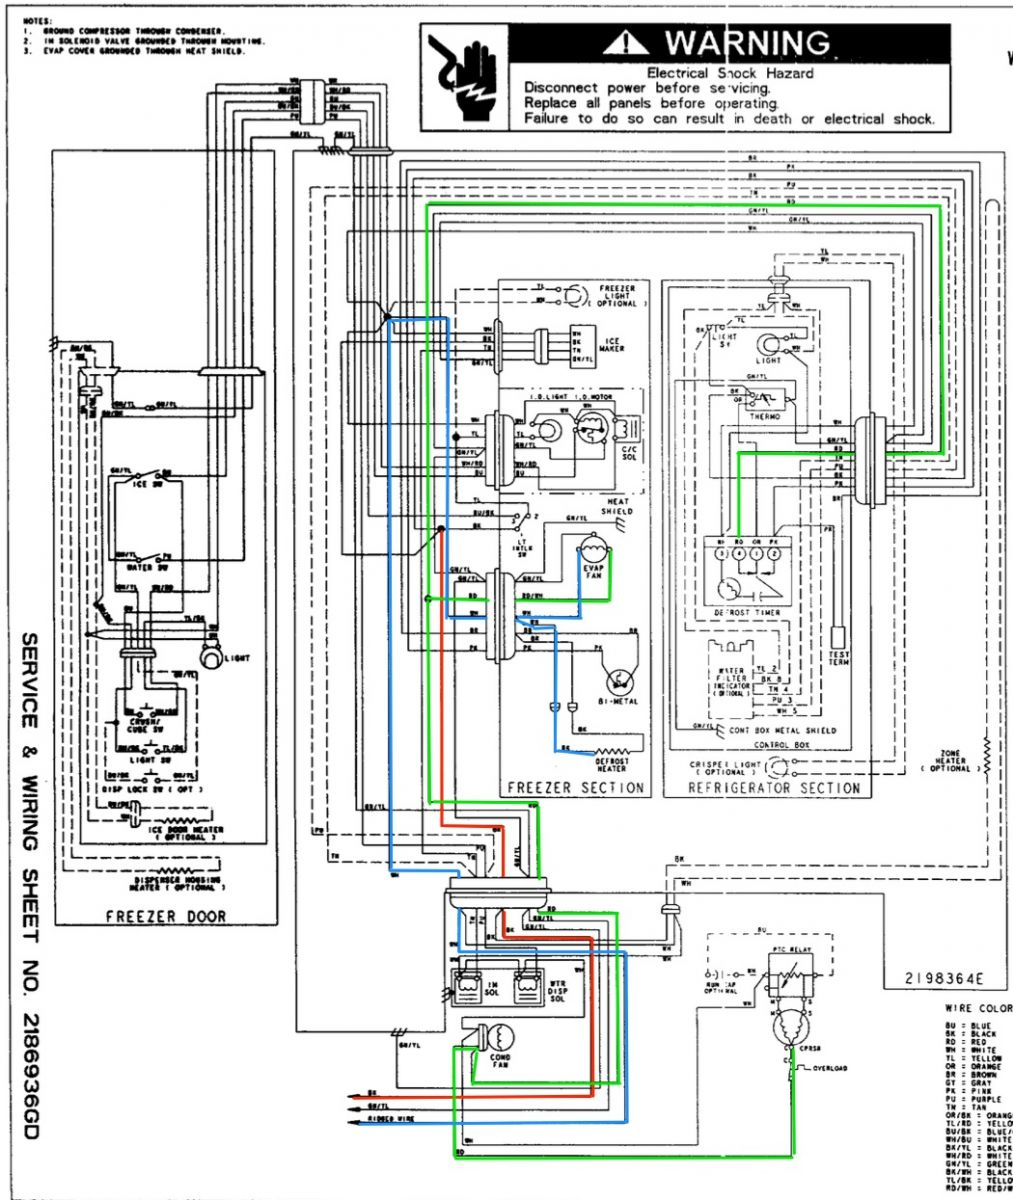 gallery_4_4_346879 whirlpool ed25rfxfw01 refrigerator wiring diagram the wiring diagram whirlpool refrigerator at gsmx.co